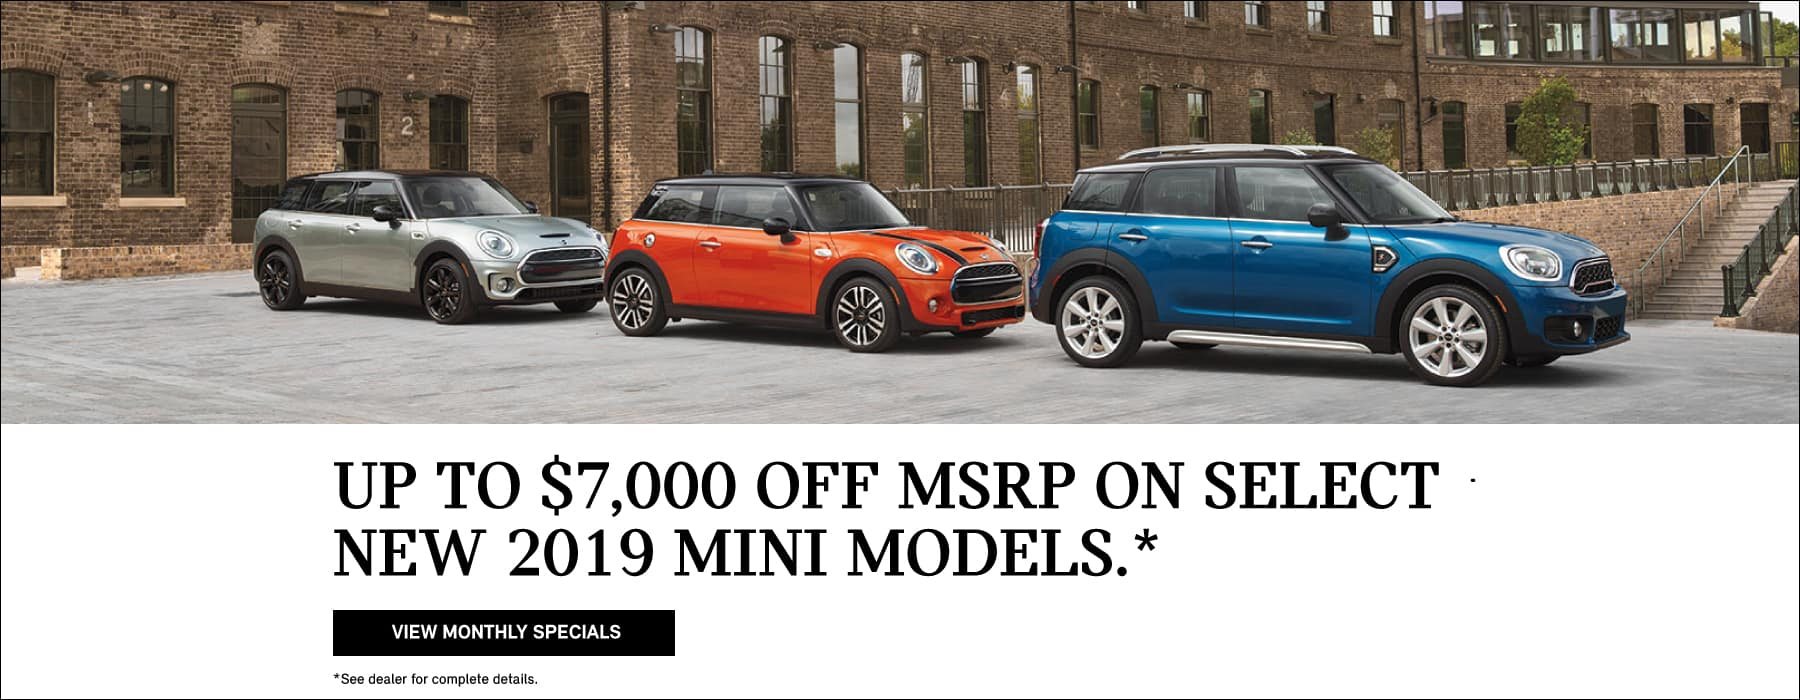 up to $7,000 off select new 2019 MINI models.